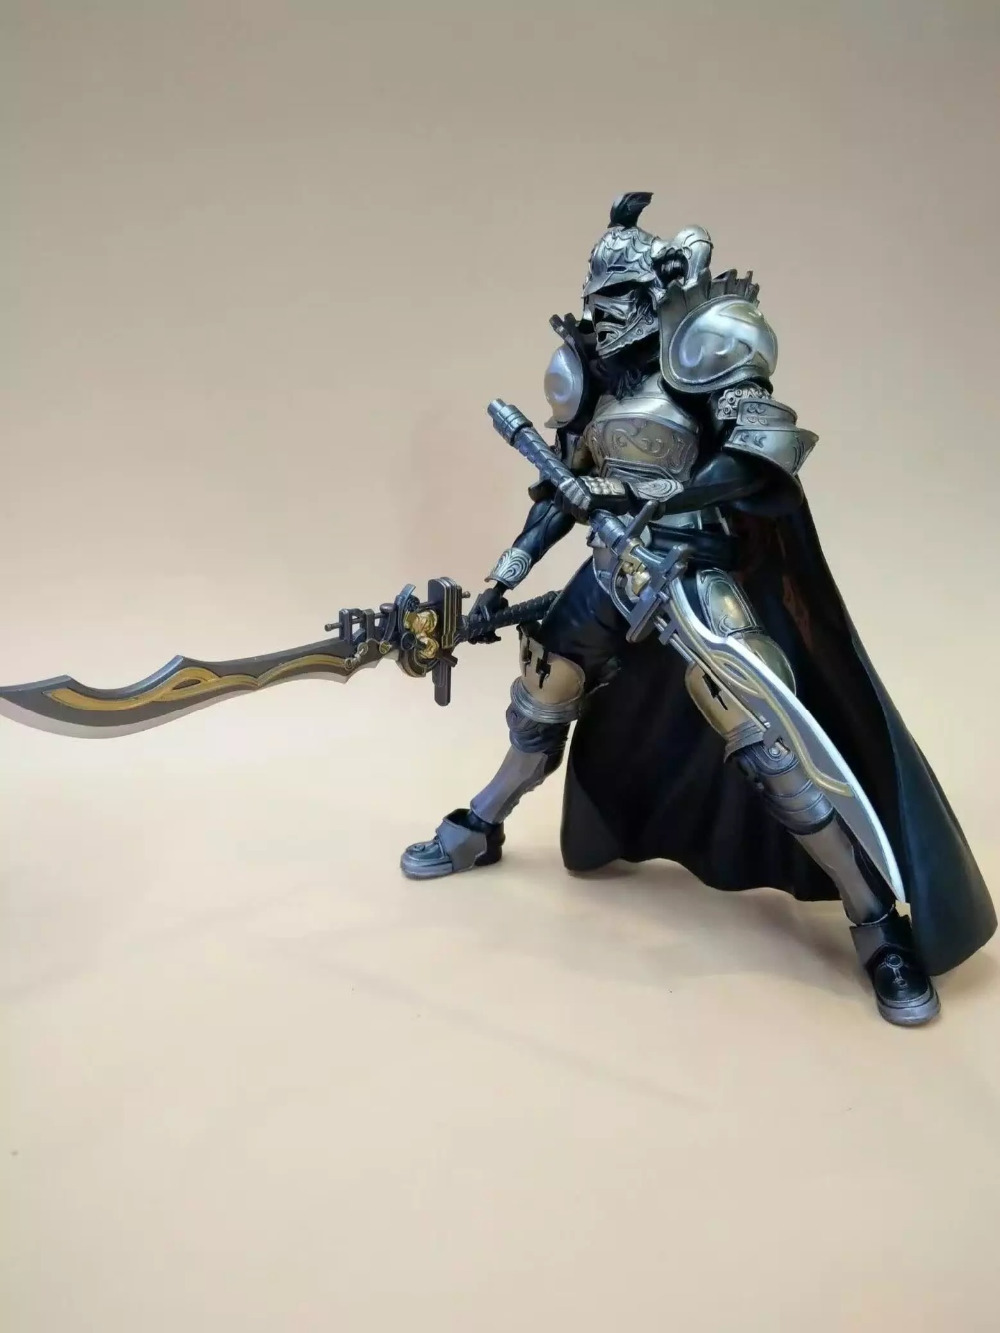 Huong Anime Figure 28 CM SQUARE ENIX Play Arts KAI Final Fantasy DISSIDIA Gabranth PVC Action Figure Collectible Model Toy